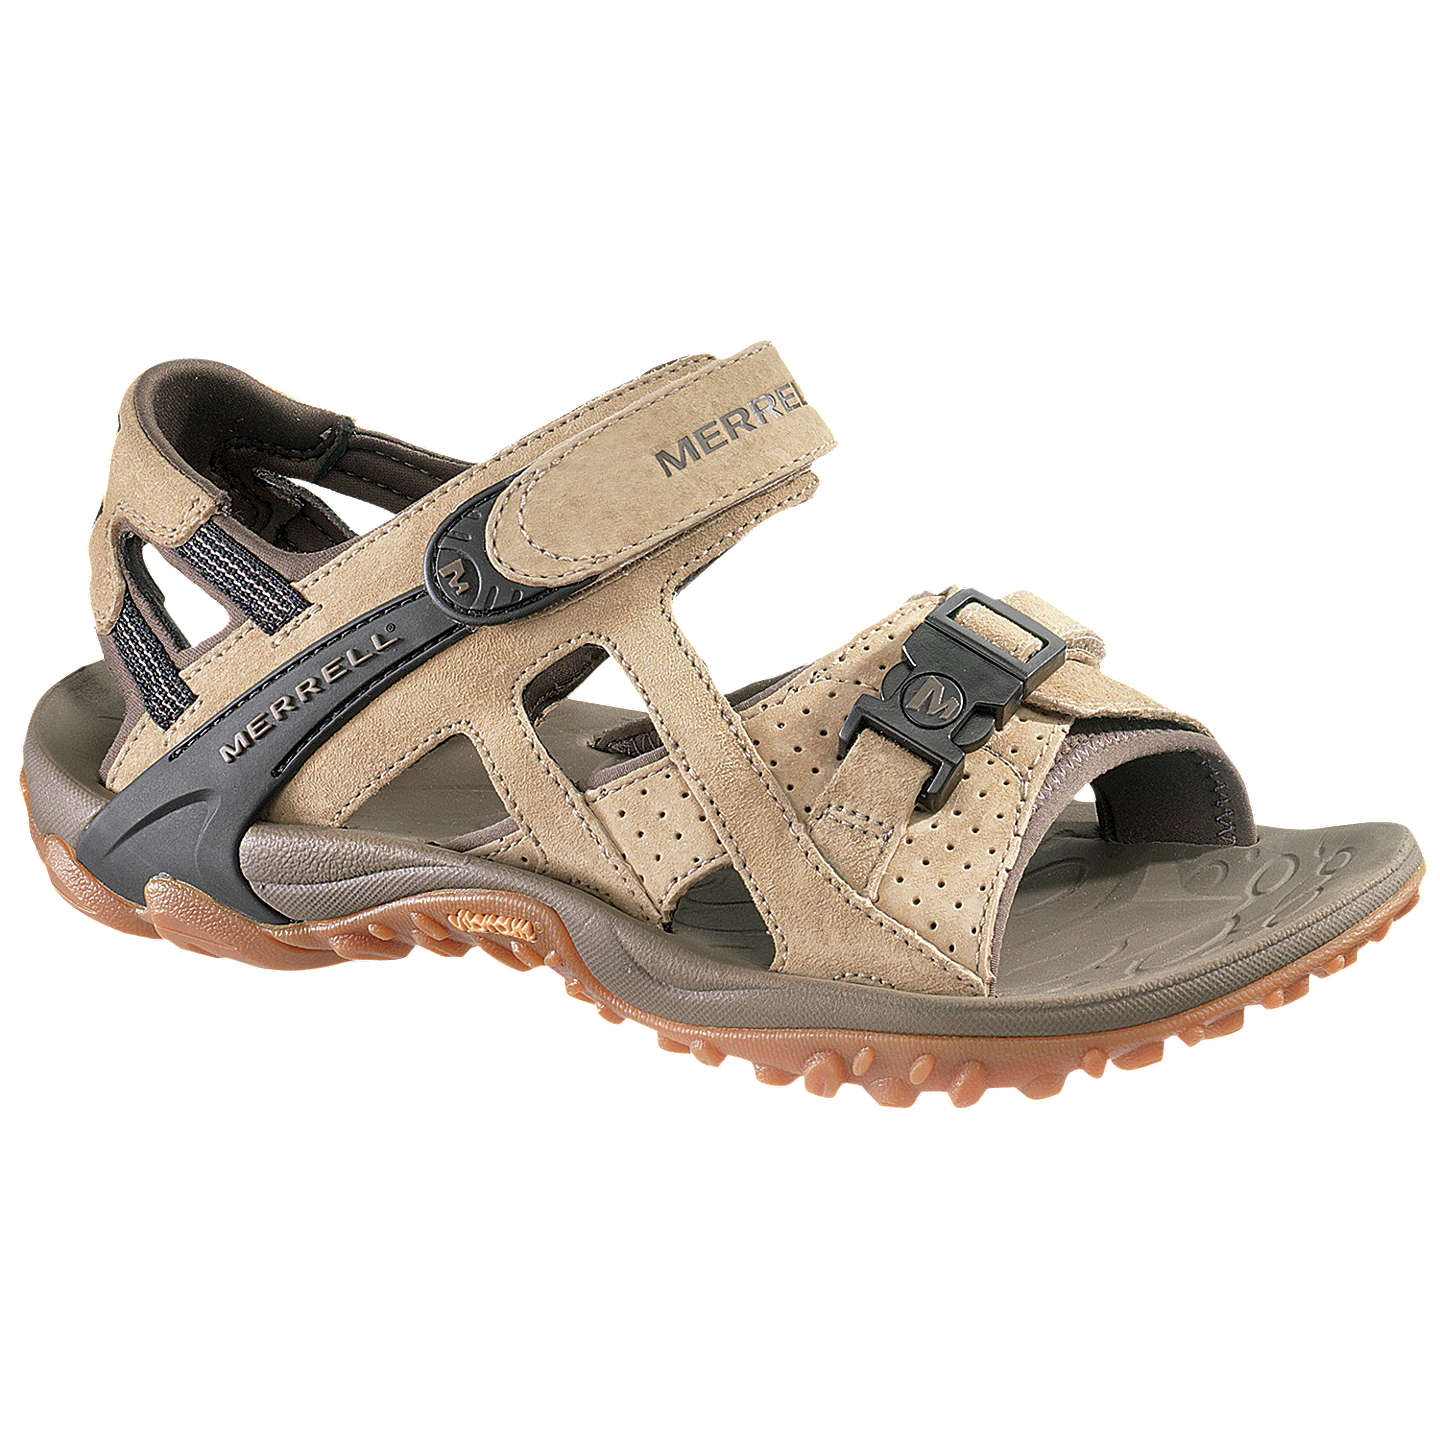 BuyMerrell Kahuna III Mens Sandals Taupe 8 Online at johnlewiscom